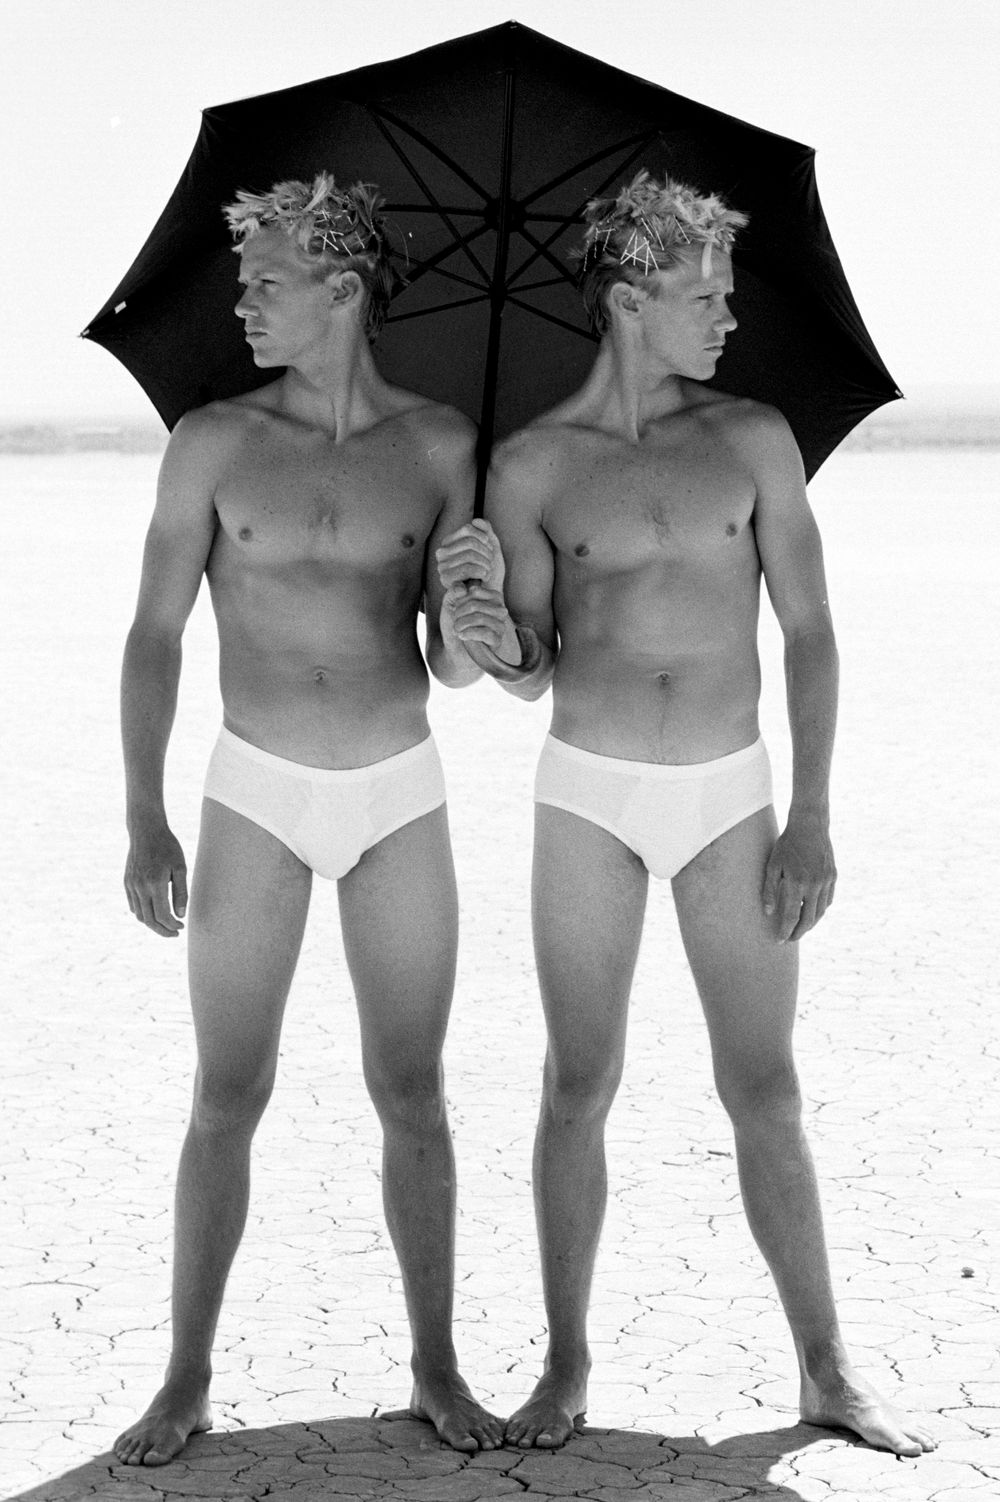 Brewer Twins in Desert with Umbrella